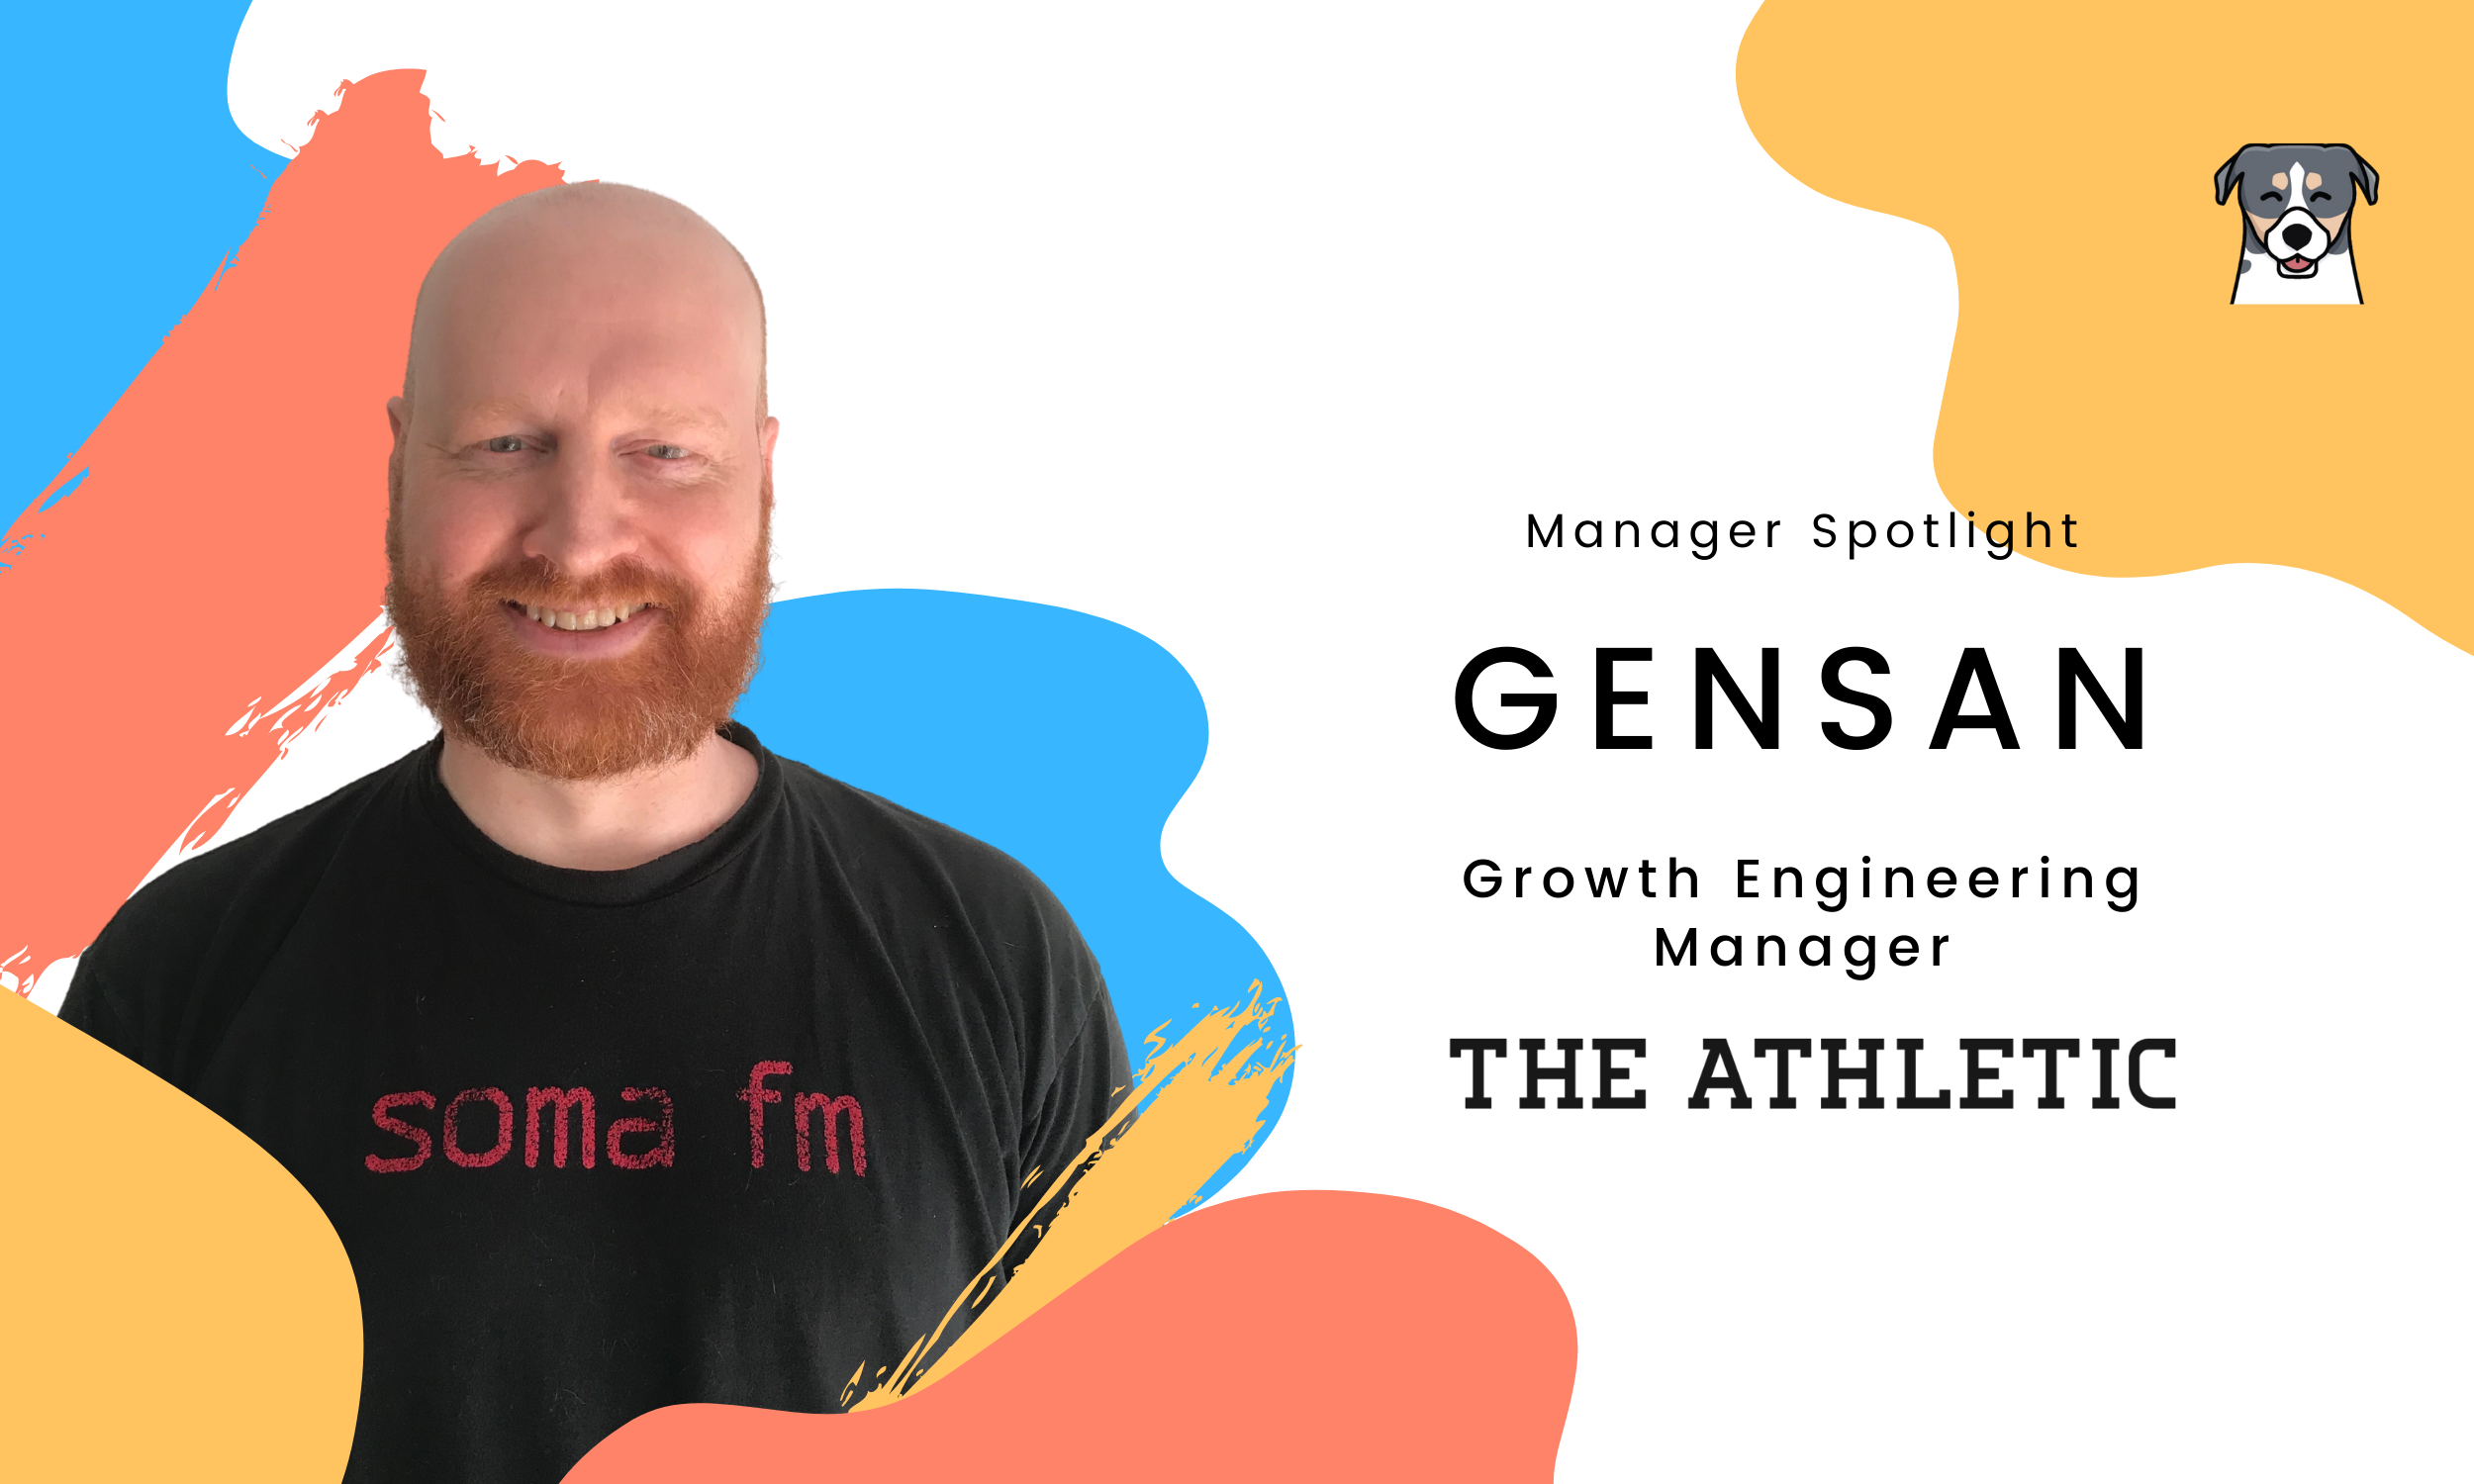 This week we spoke to Gensan, an Engineering Manager at The Athletic. He discusses how to navigate a packed calendar, the importance of listening, and some amazing remote work tips.